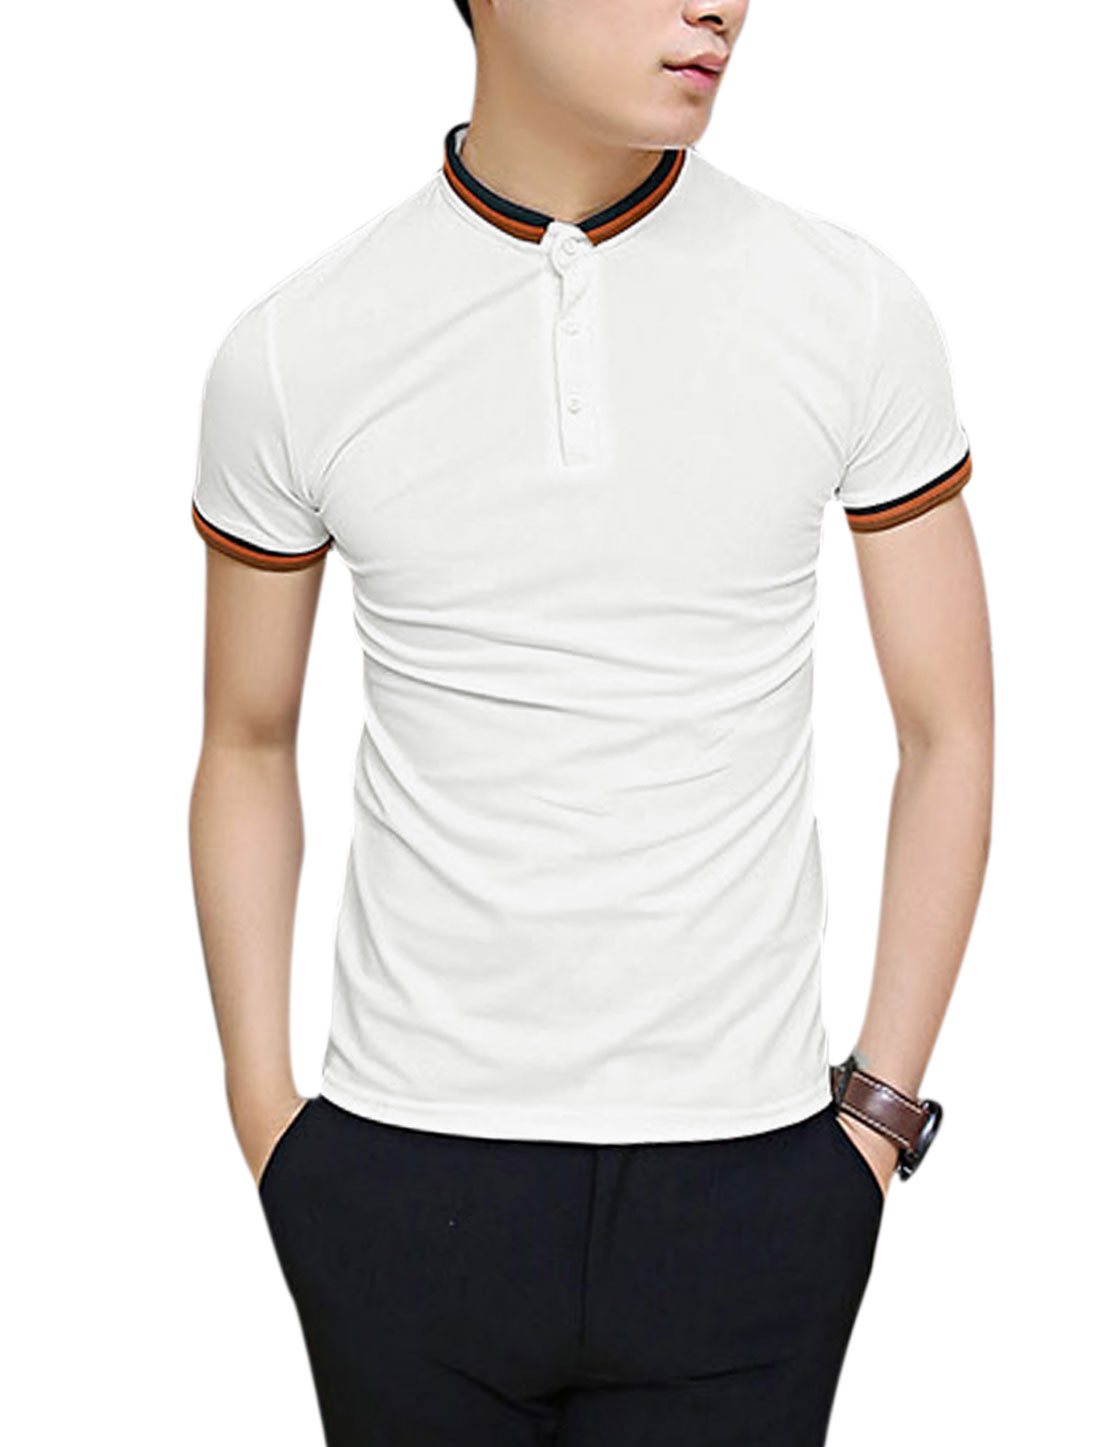 Men Stripes Line Detail Short Sleeve Slim Fit Polo Shirt White M